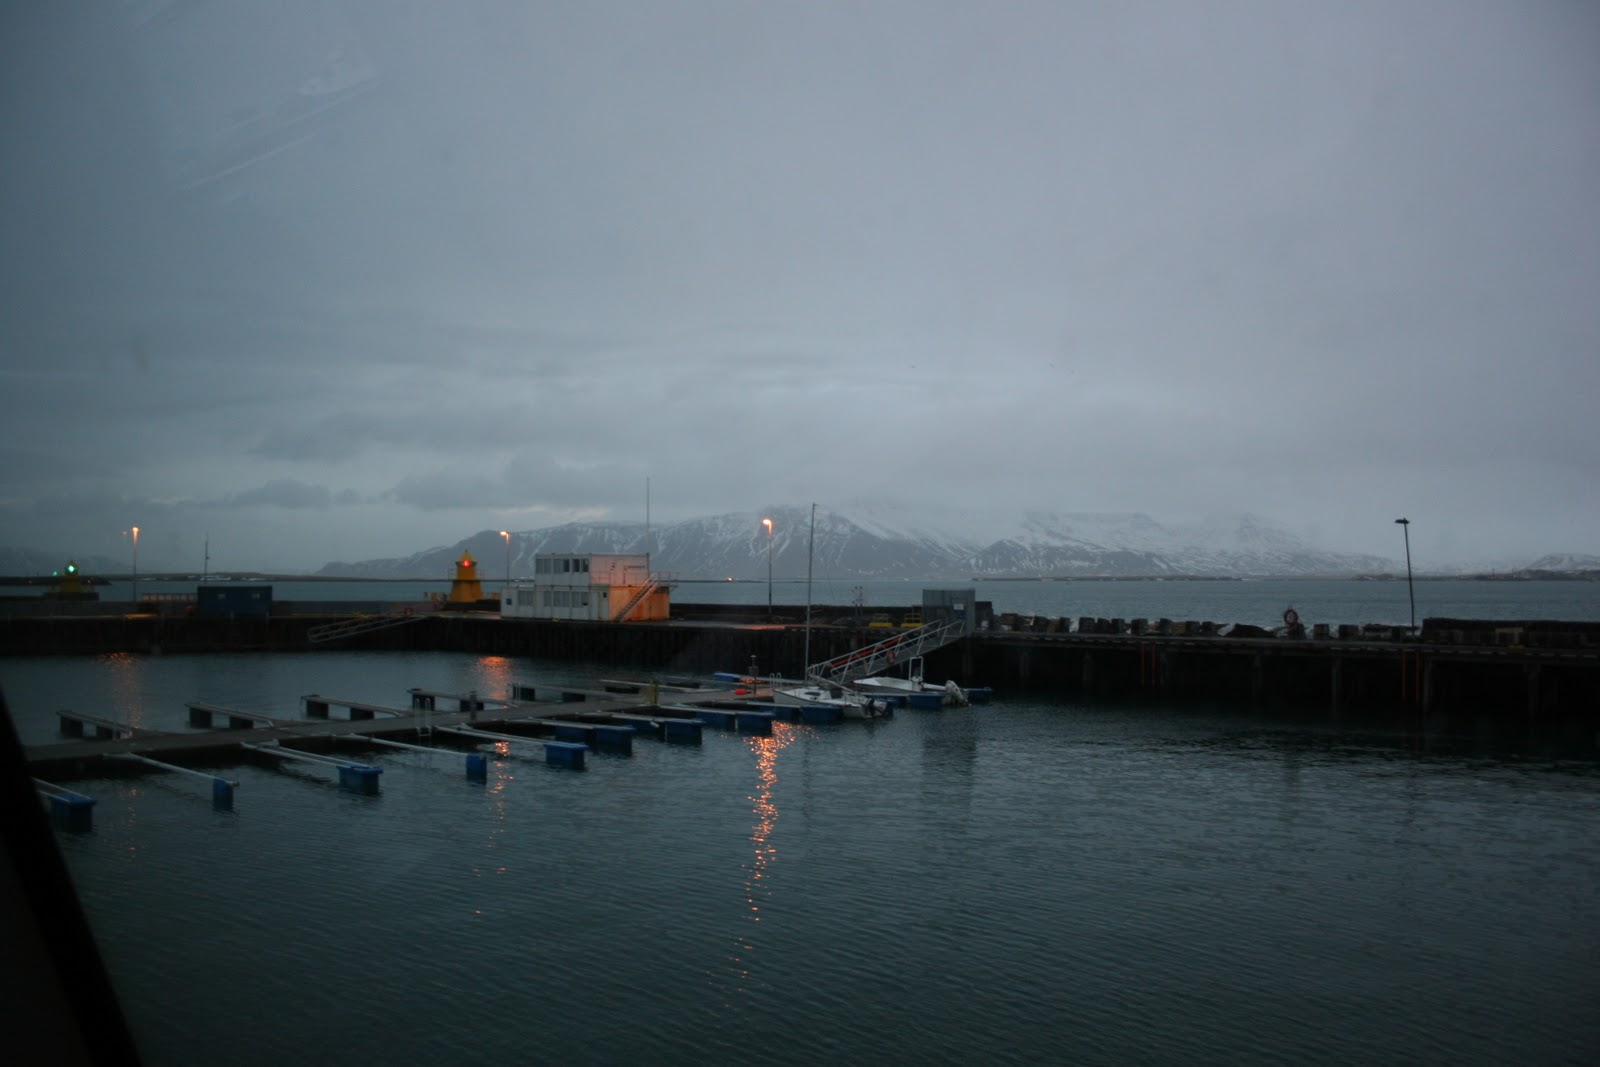 The harbor in Reykjavik, as seen from inside the opera house.